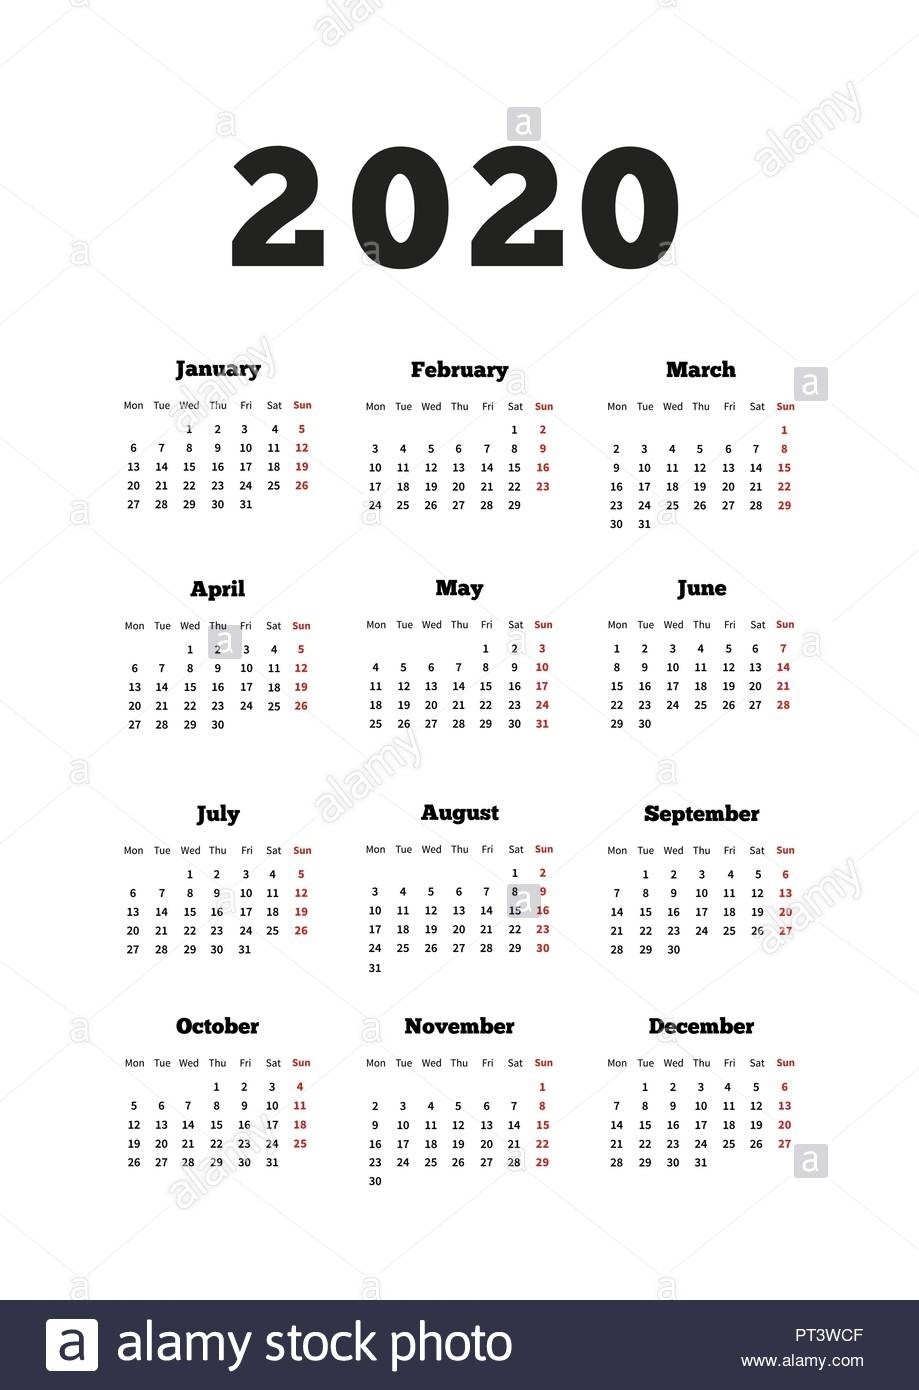 Calendar On 2020 Year With Week Starting From Monday, A4 Size Perky 2020 Calendar Starting Monday